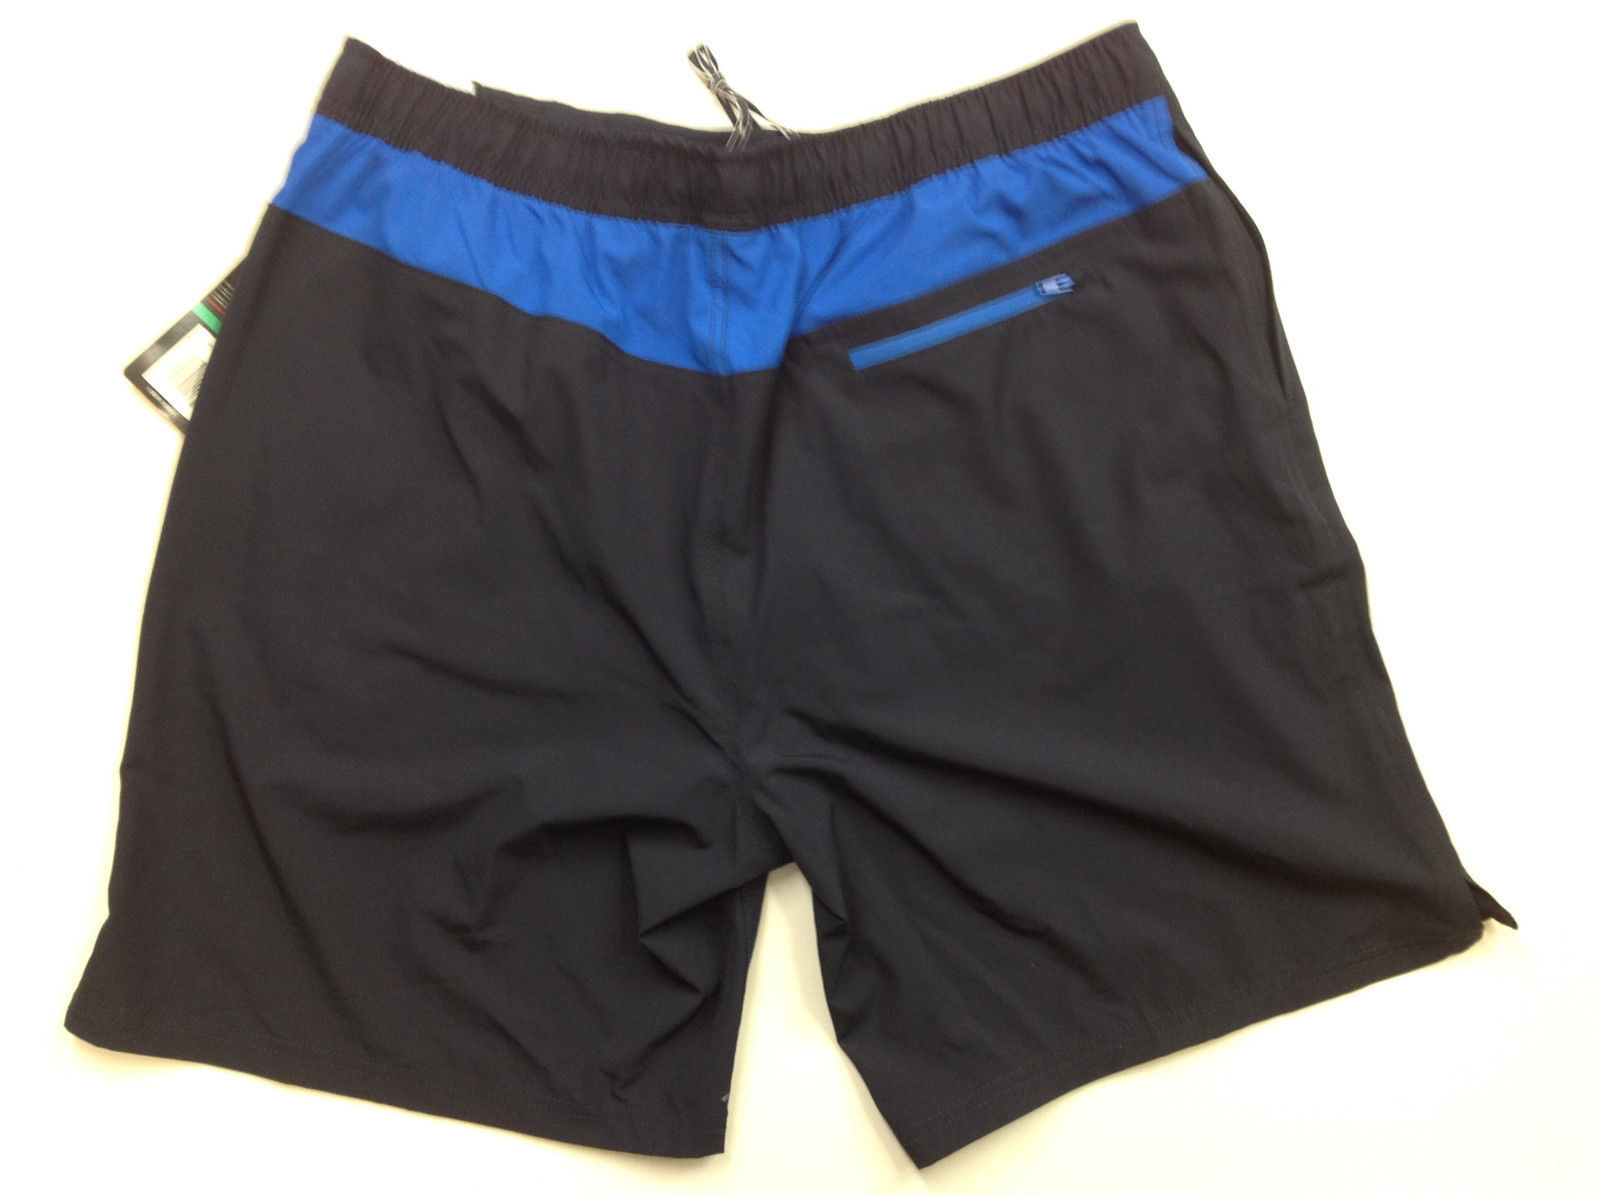 73b306b6219e5 Speedo Men's Heather Tech Volley Swim Short and 50 similar items. S l1600